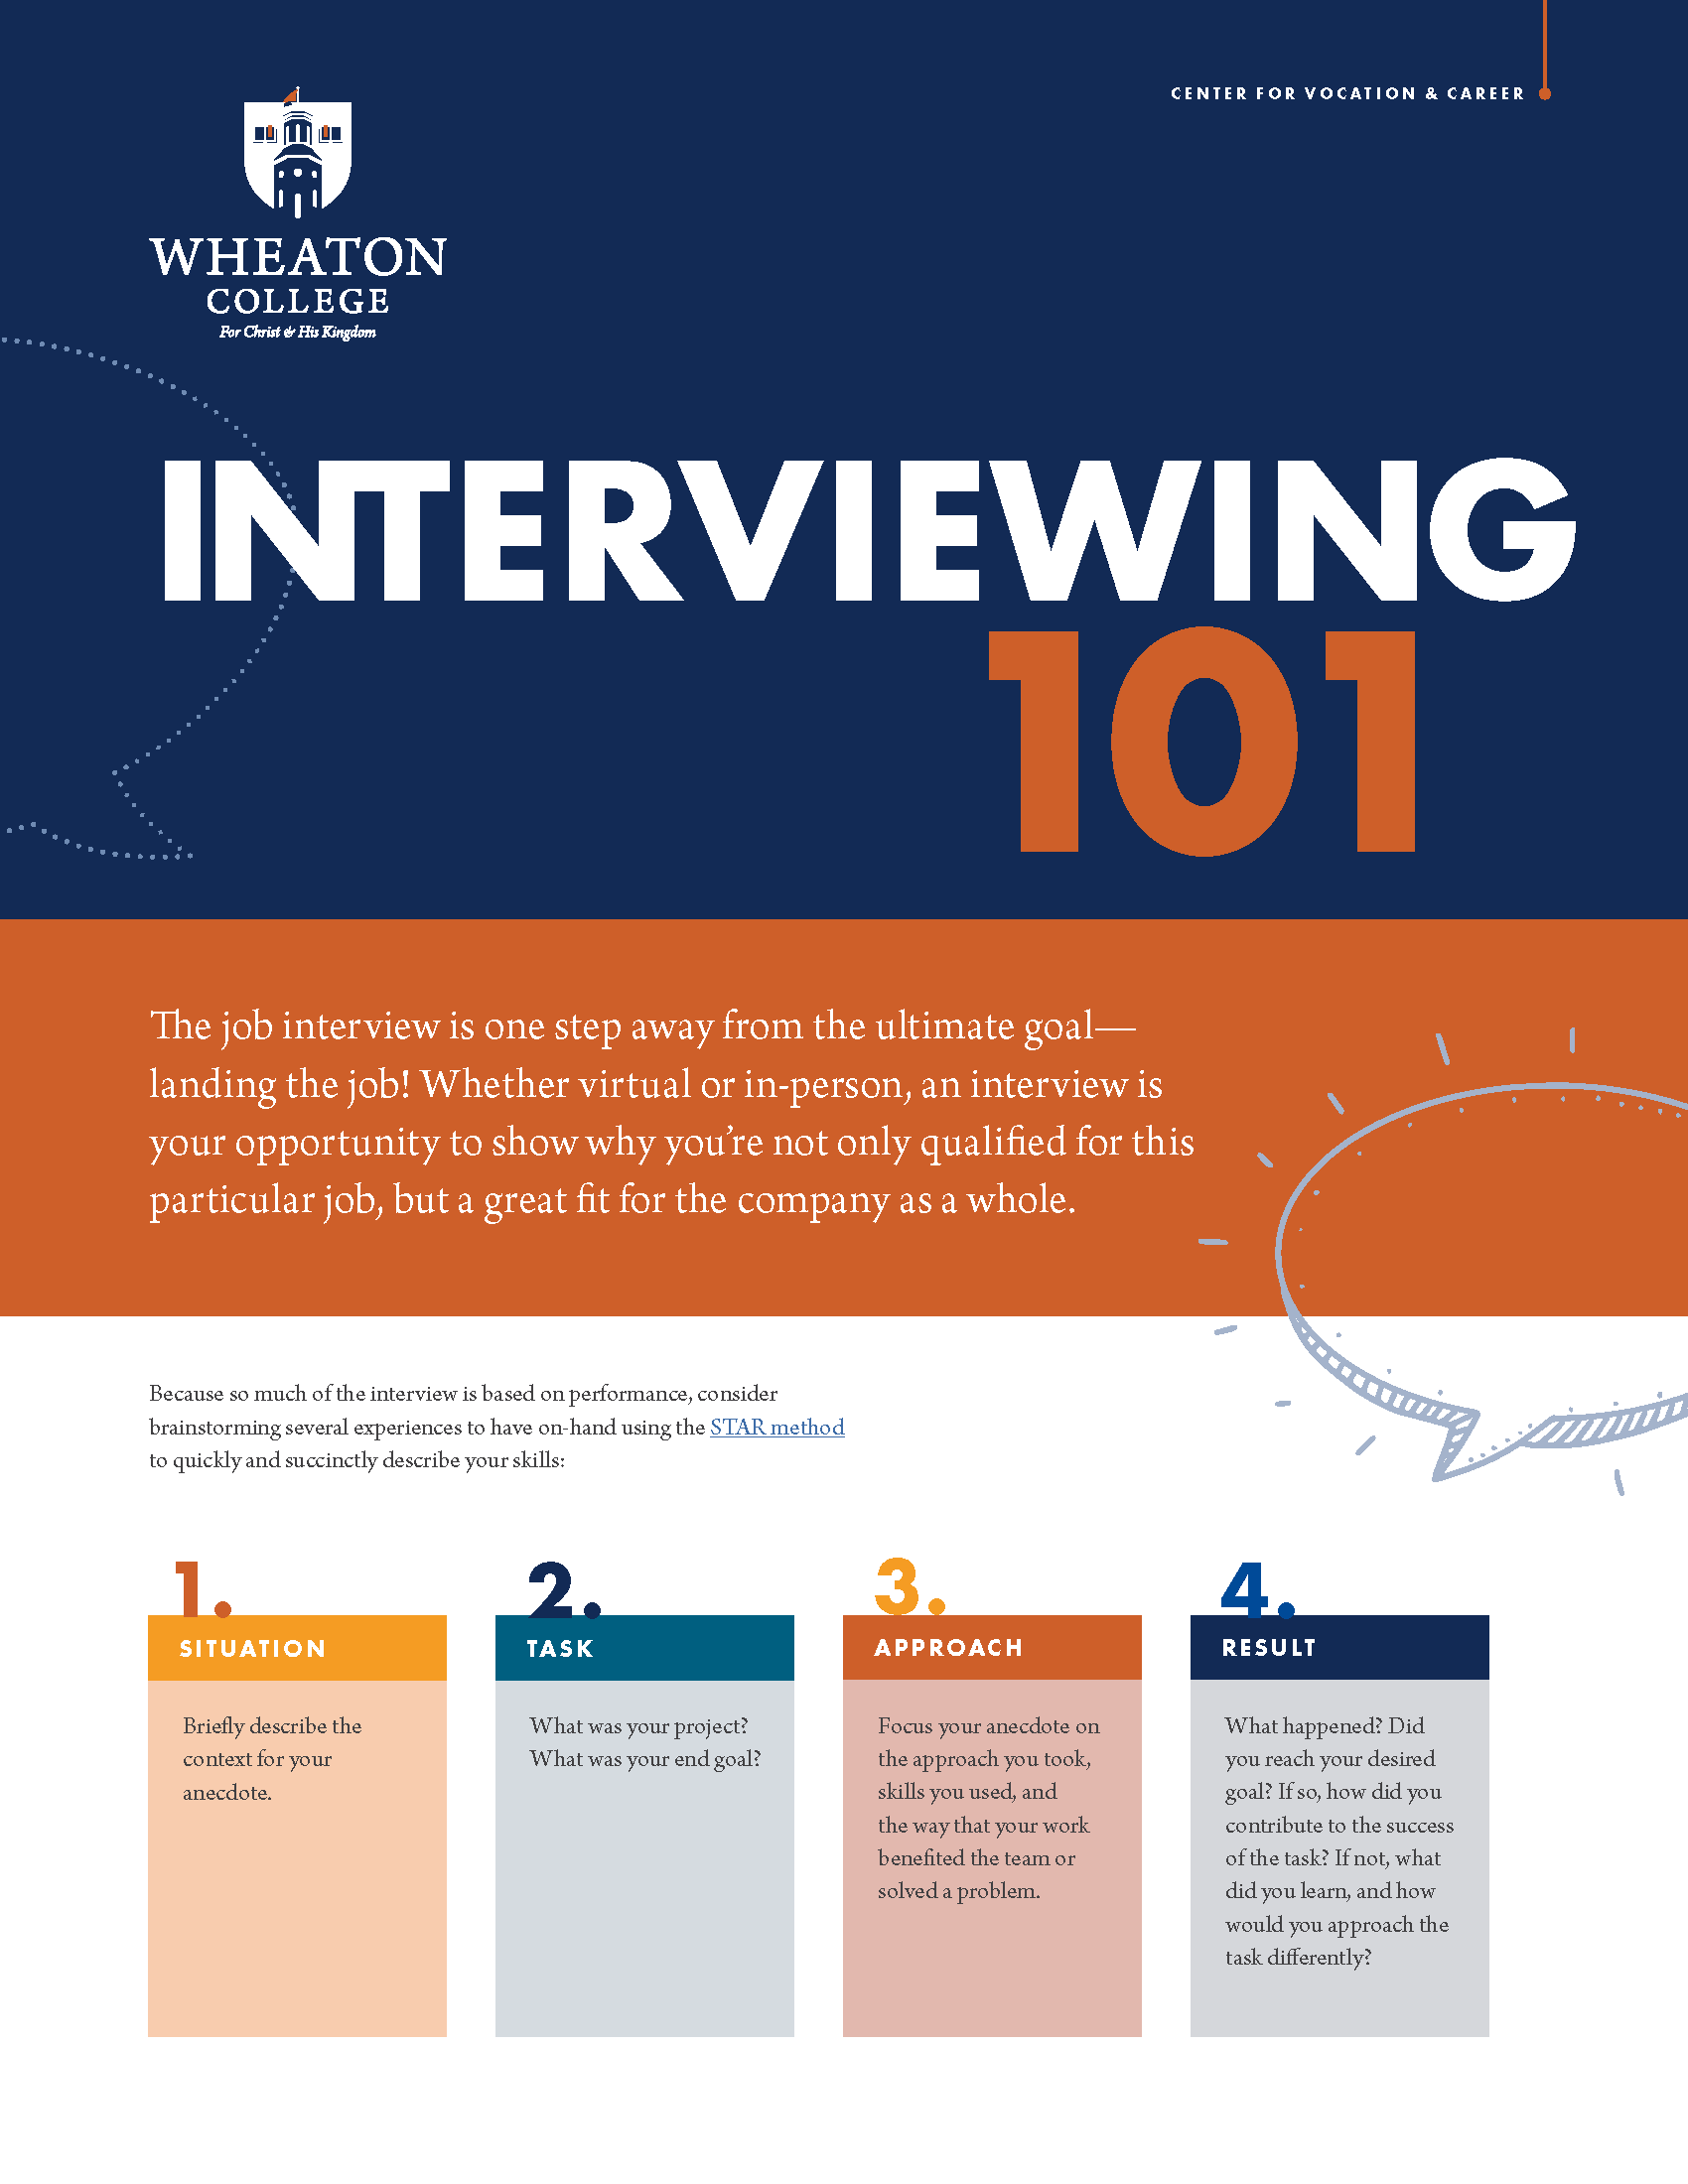 Interviewing 101 Front Page Image